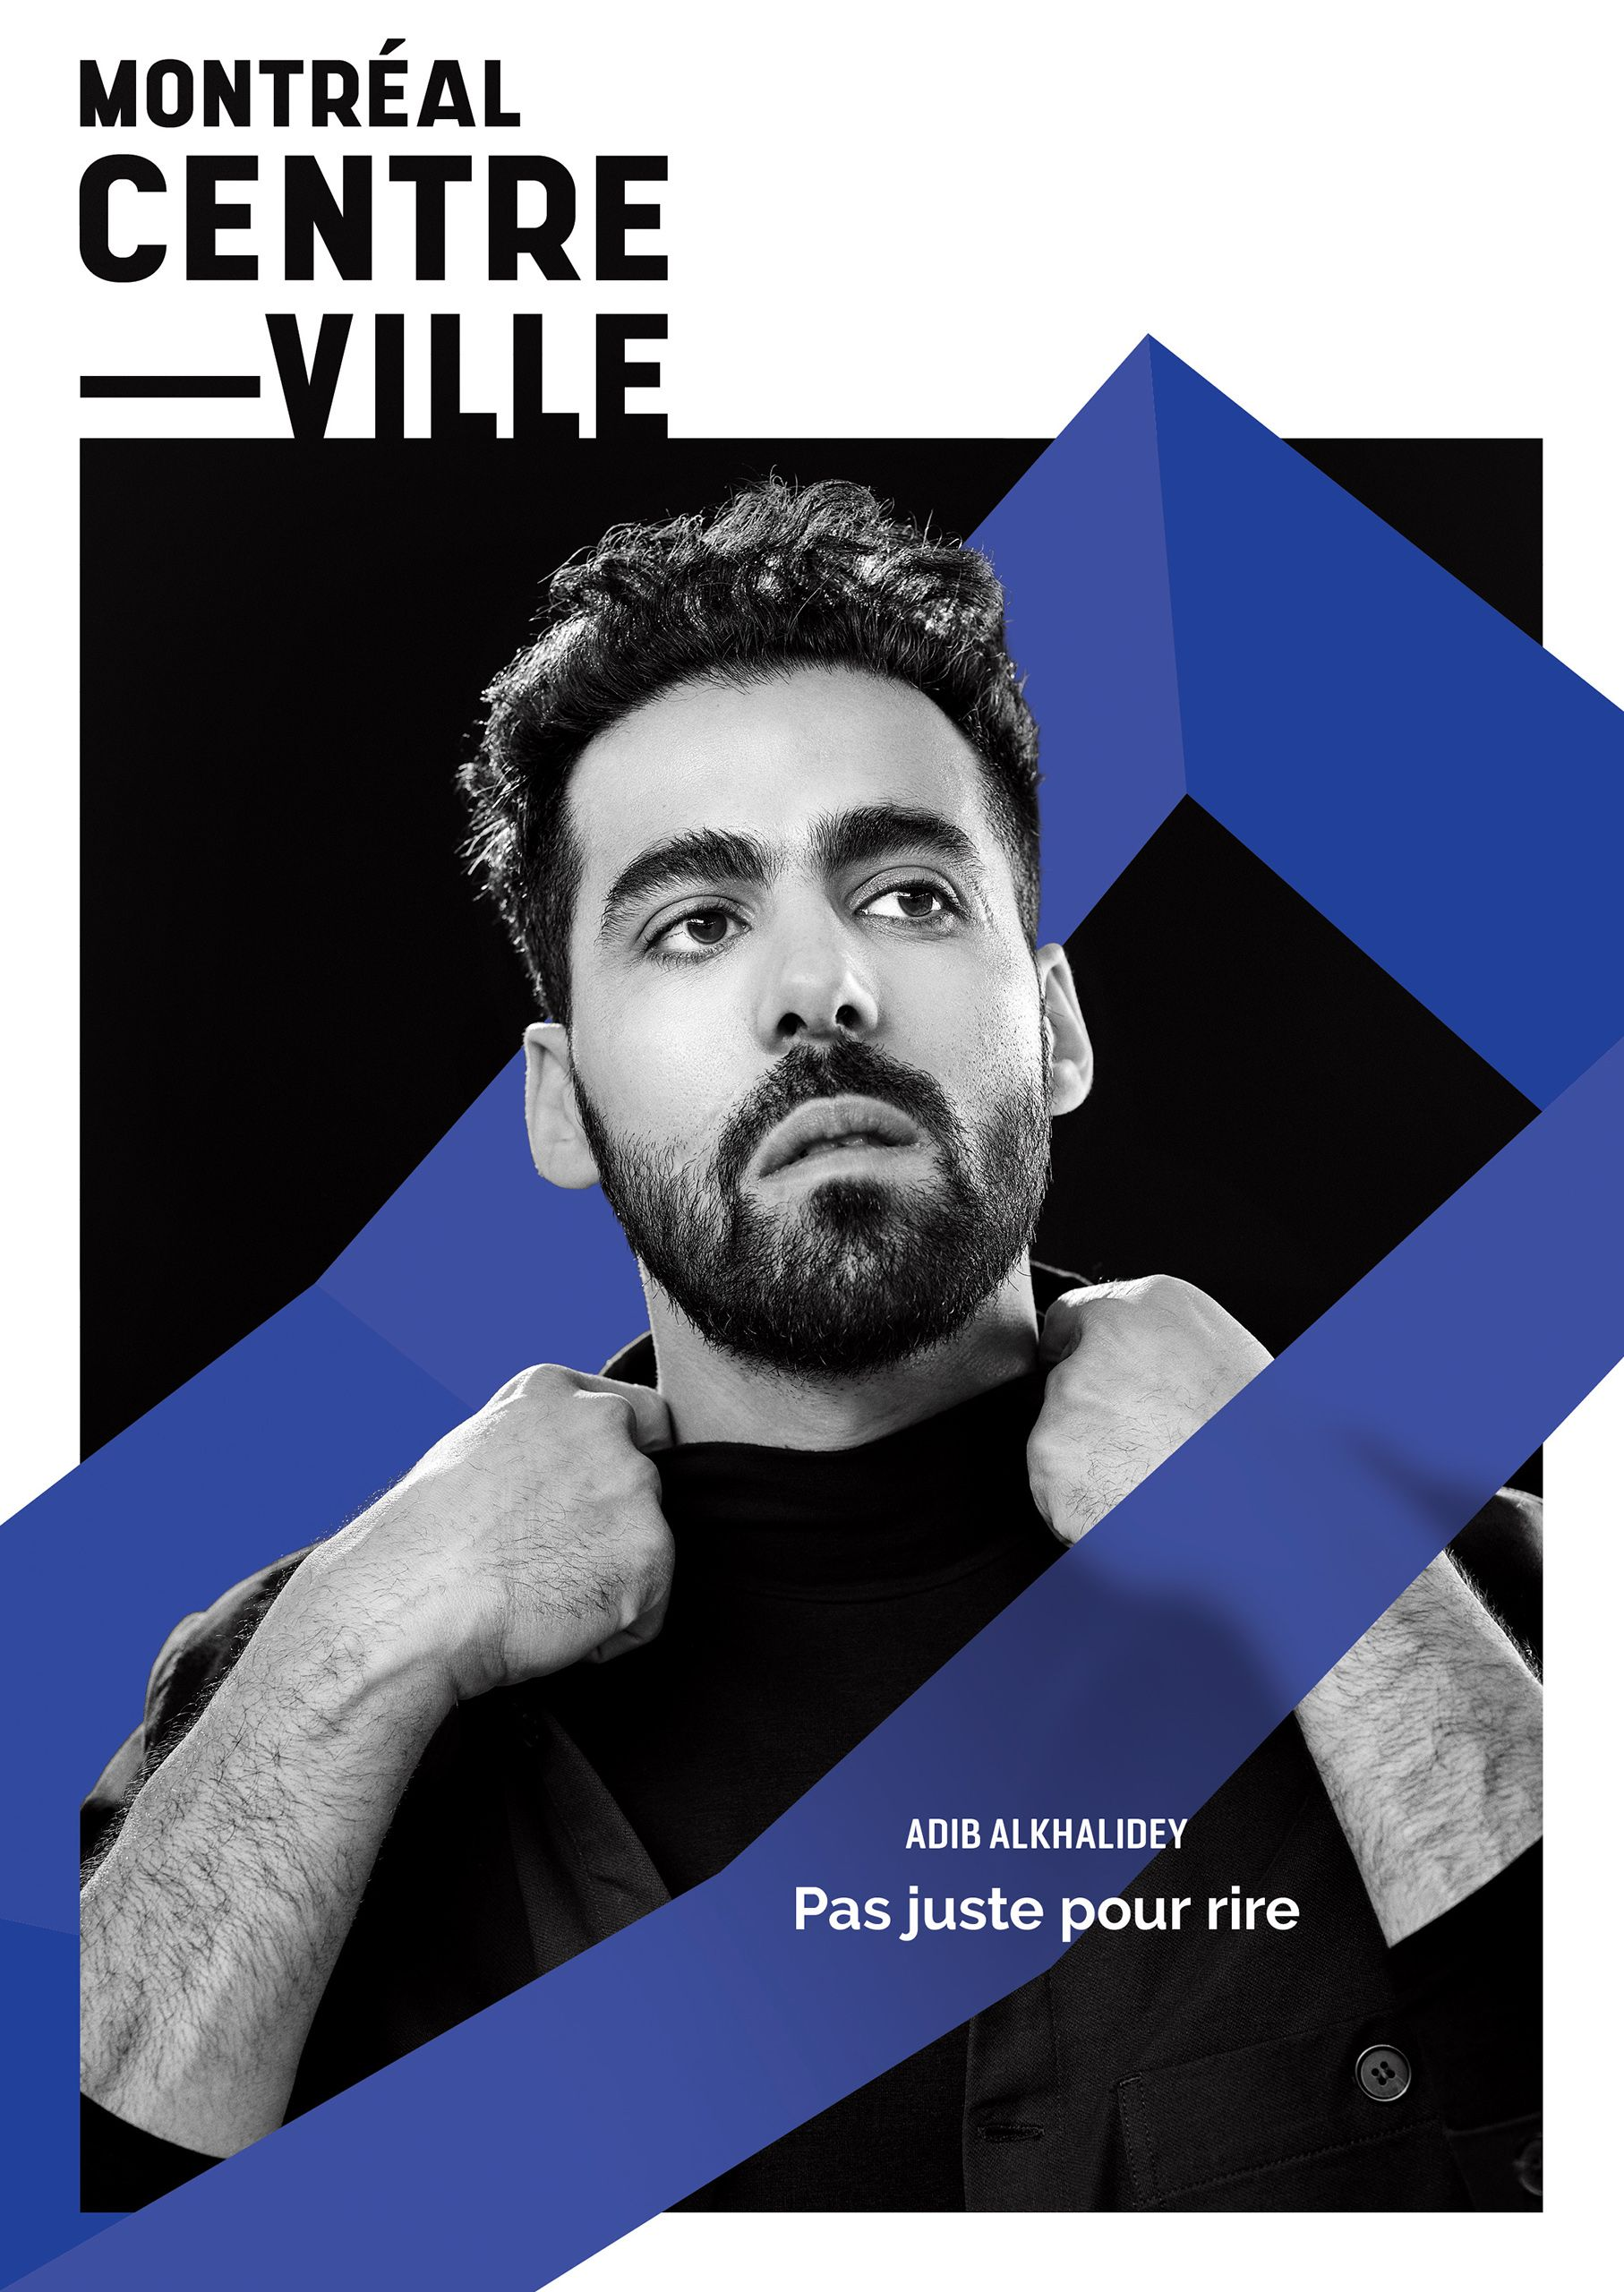 Black and white portrait of Adib Alkhalidey for Downtown Montreal magazine with graphic design of a blue line and titles.